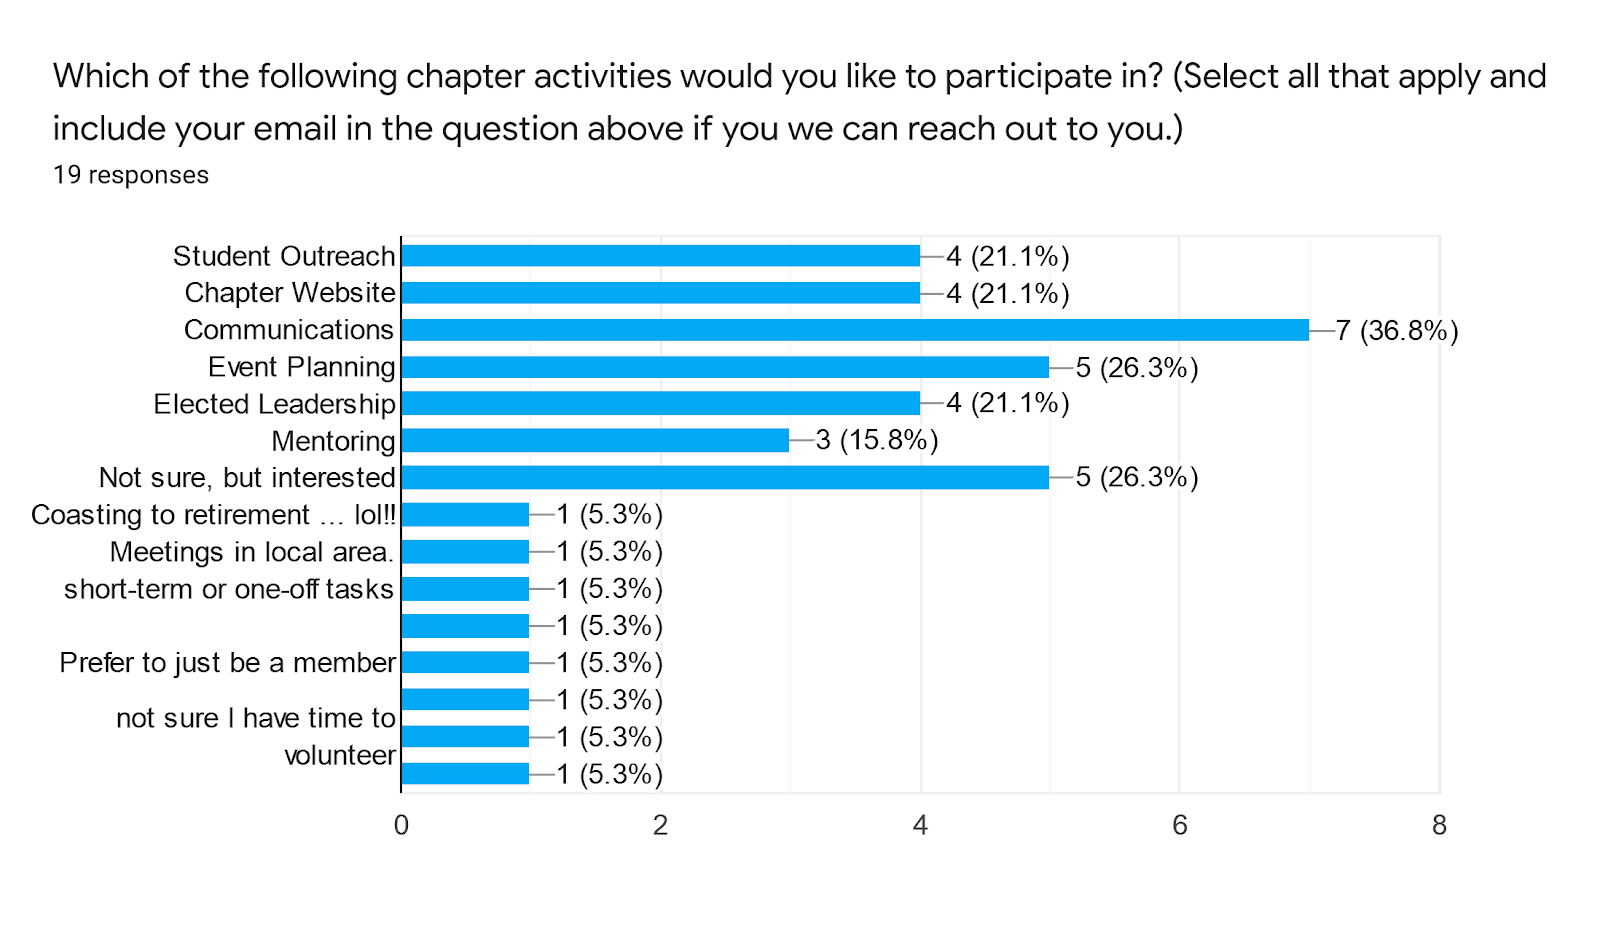 Forms response chart. Question title: Which of the following chapter activities would you like to participate in? (Select all that apply and include your email in the question above if you we can reach out to you.). Number of responses: 19 responses.